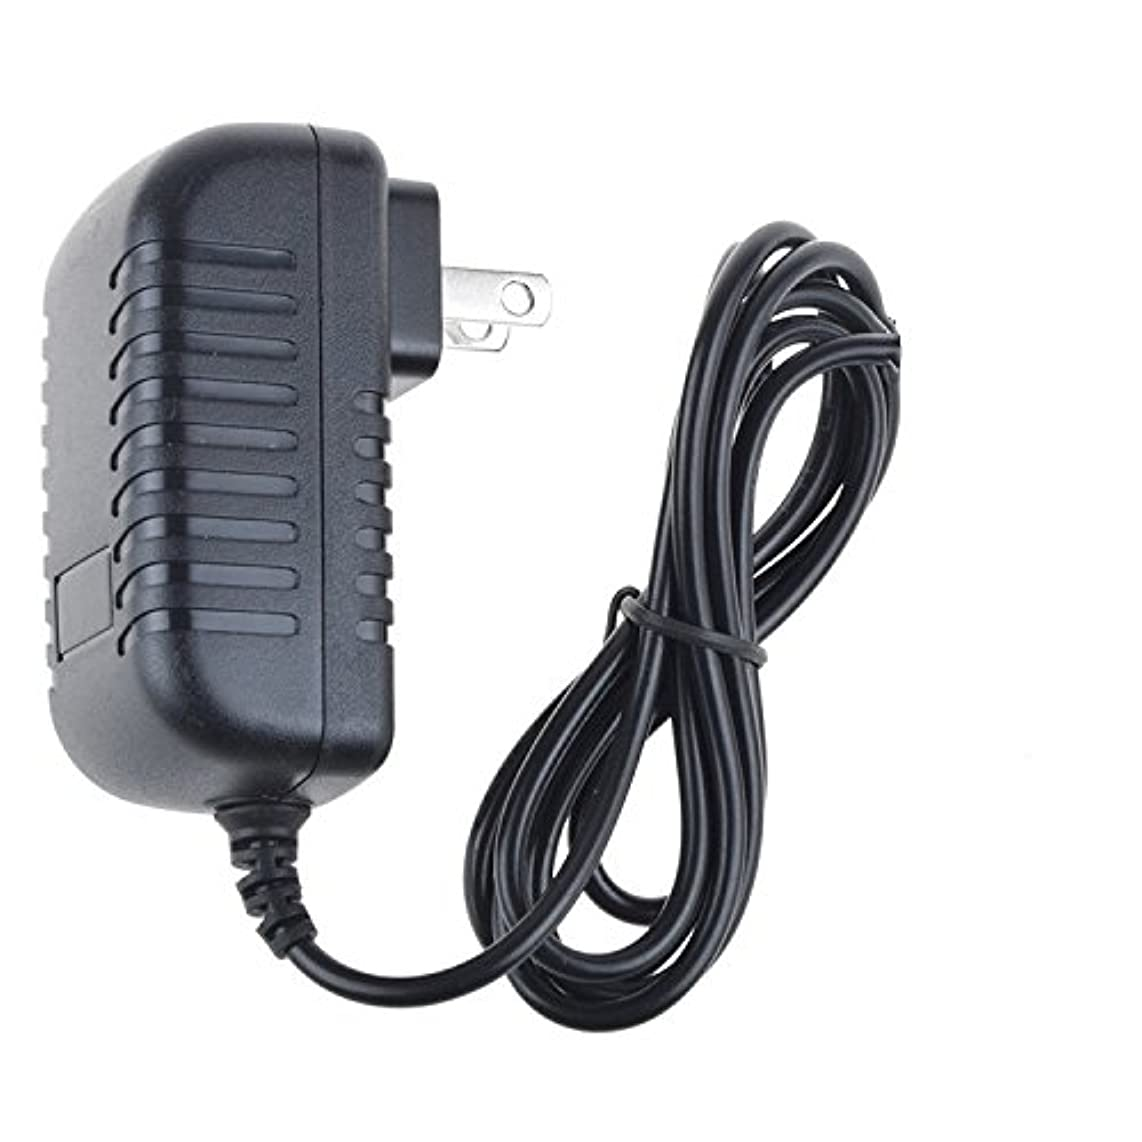 SLLEA AC/DC Adapter for Golds Gym Nordic Track CX 925 831.28354.0 831.283540 Elliptical Power Supply Cord Cable PS Wall Home Charger PSU